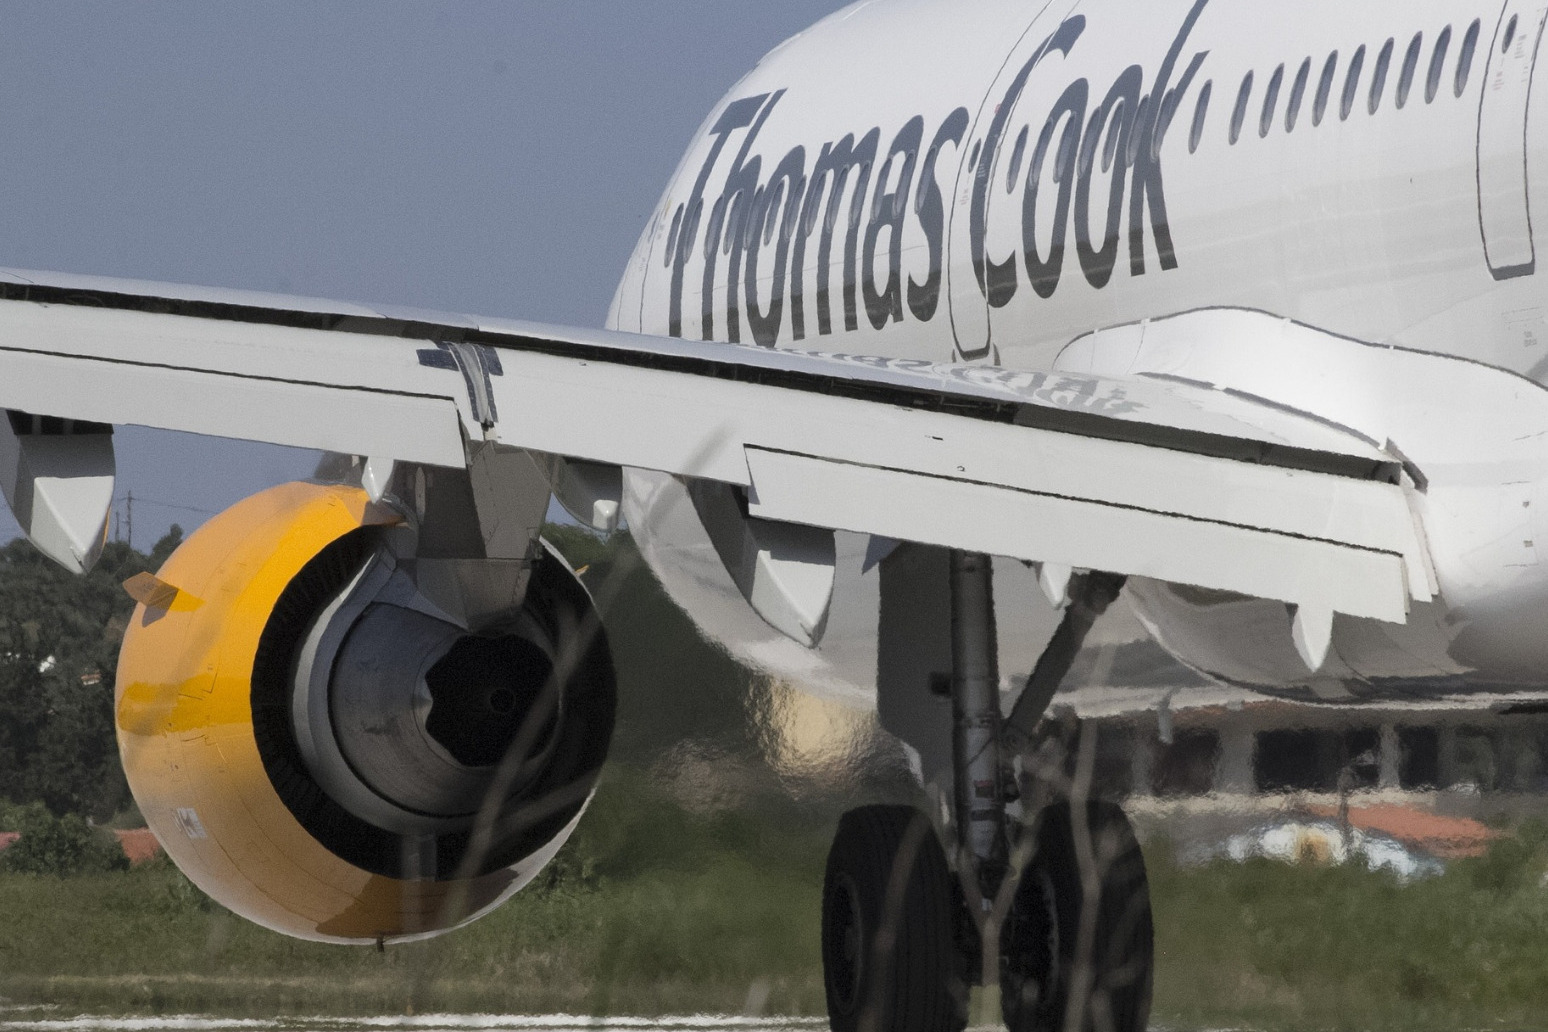 Thomas Cook collapses as rescue talks come to an end